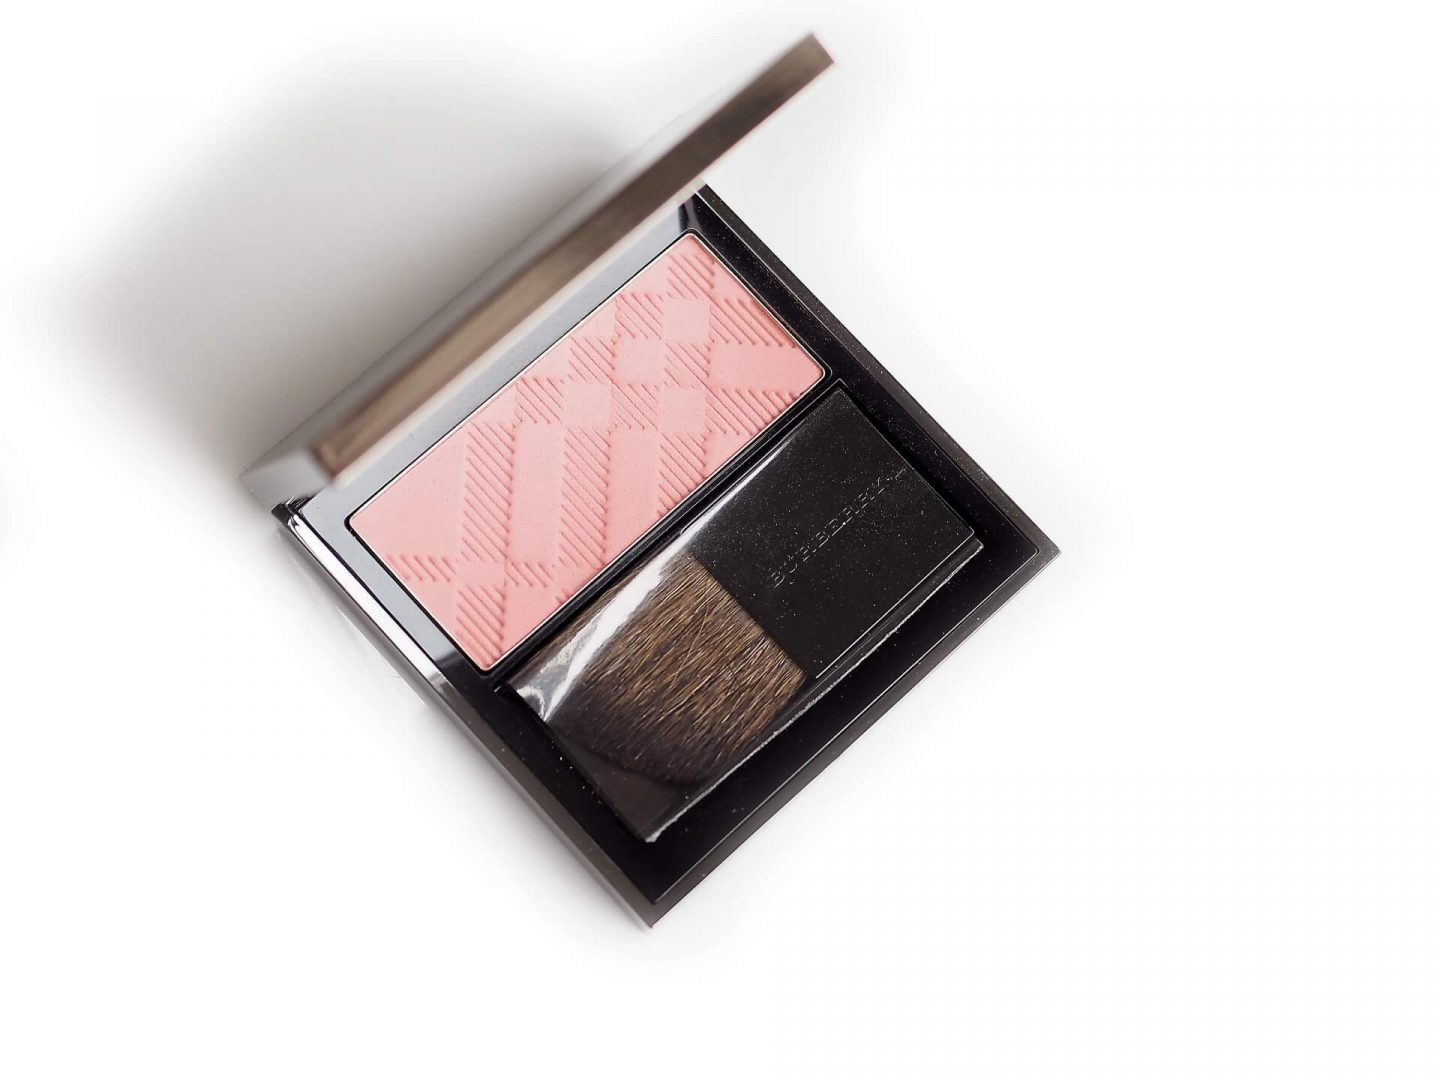 Burberry Cameo Light Glow Blush